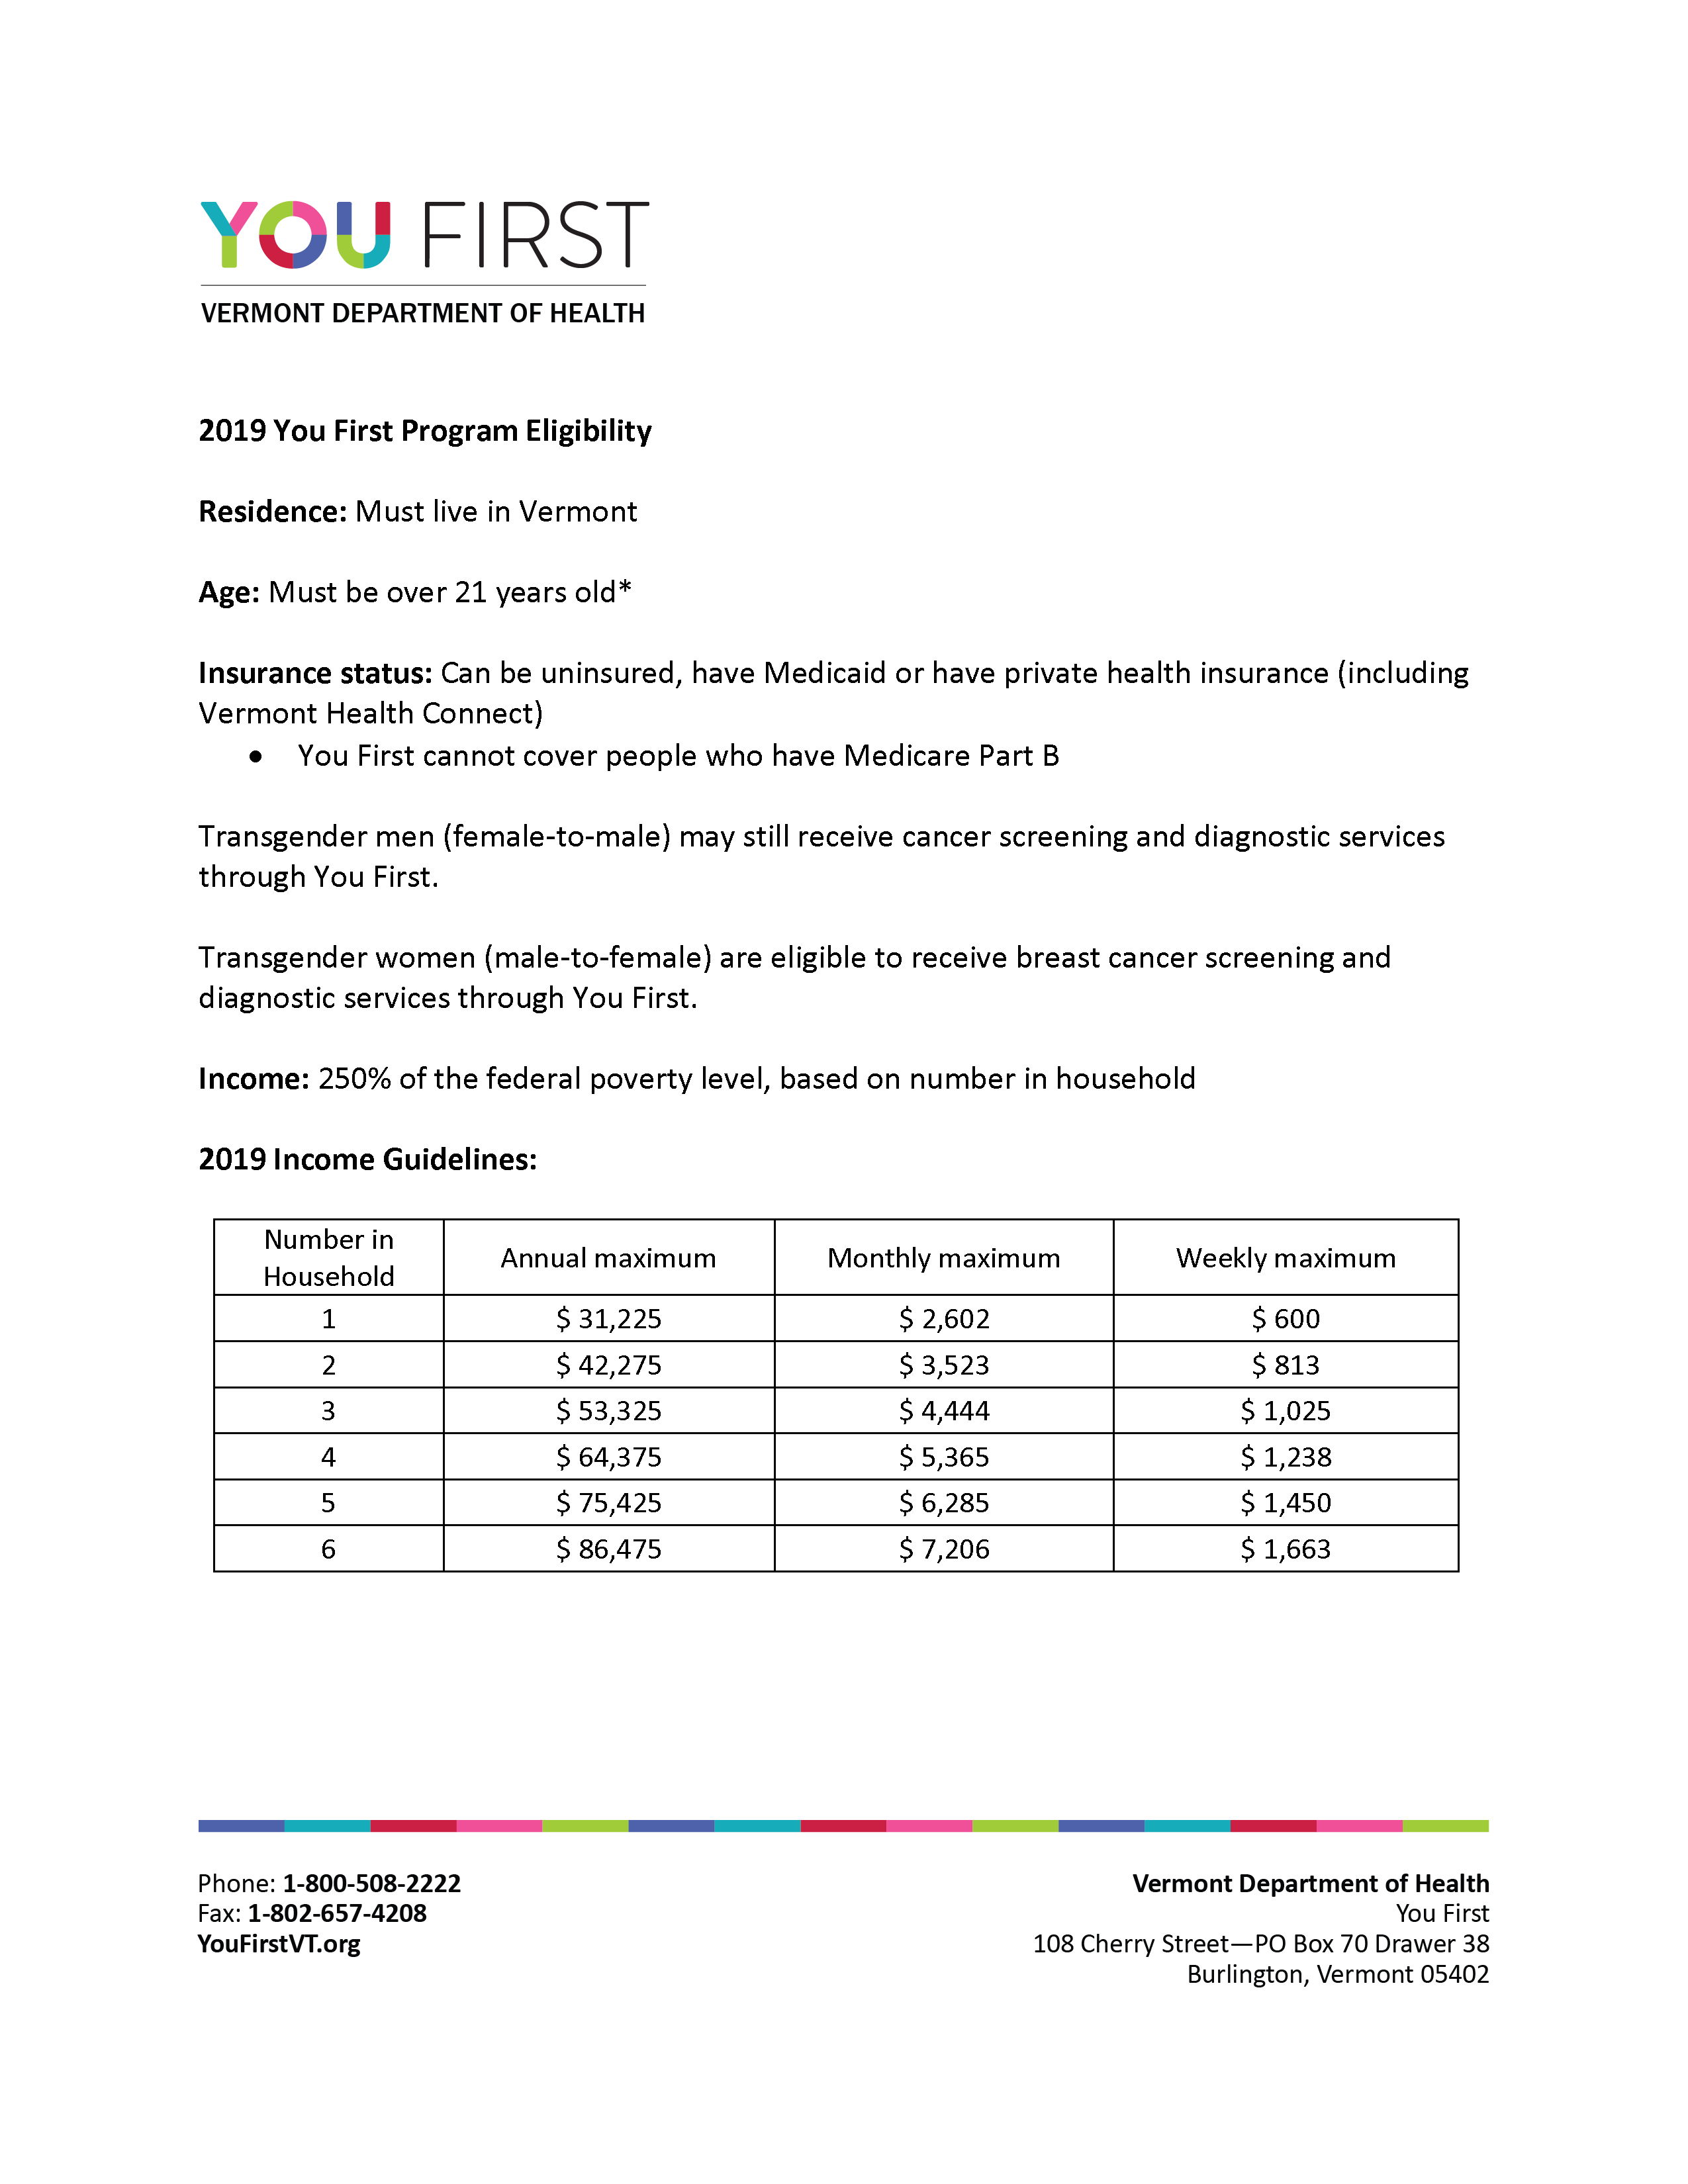 You First Income Guidelines Handout for 2019